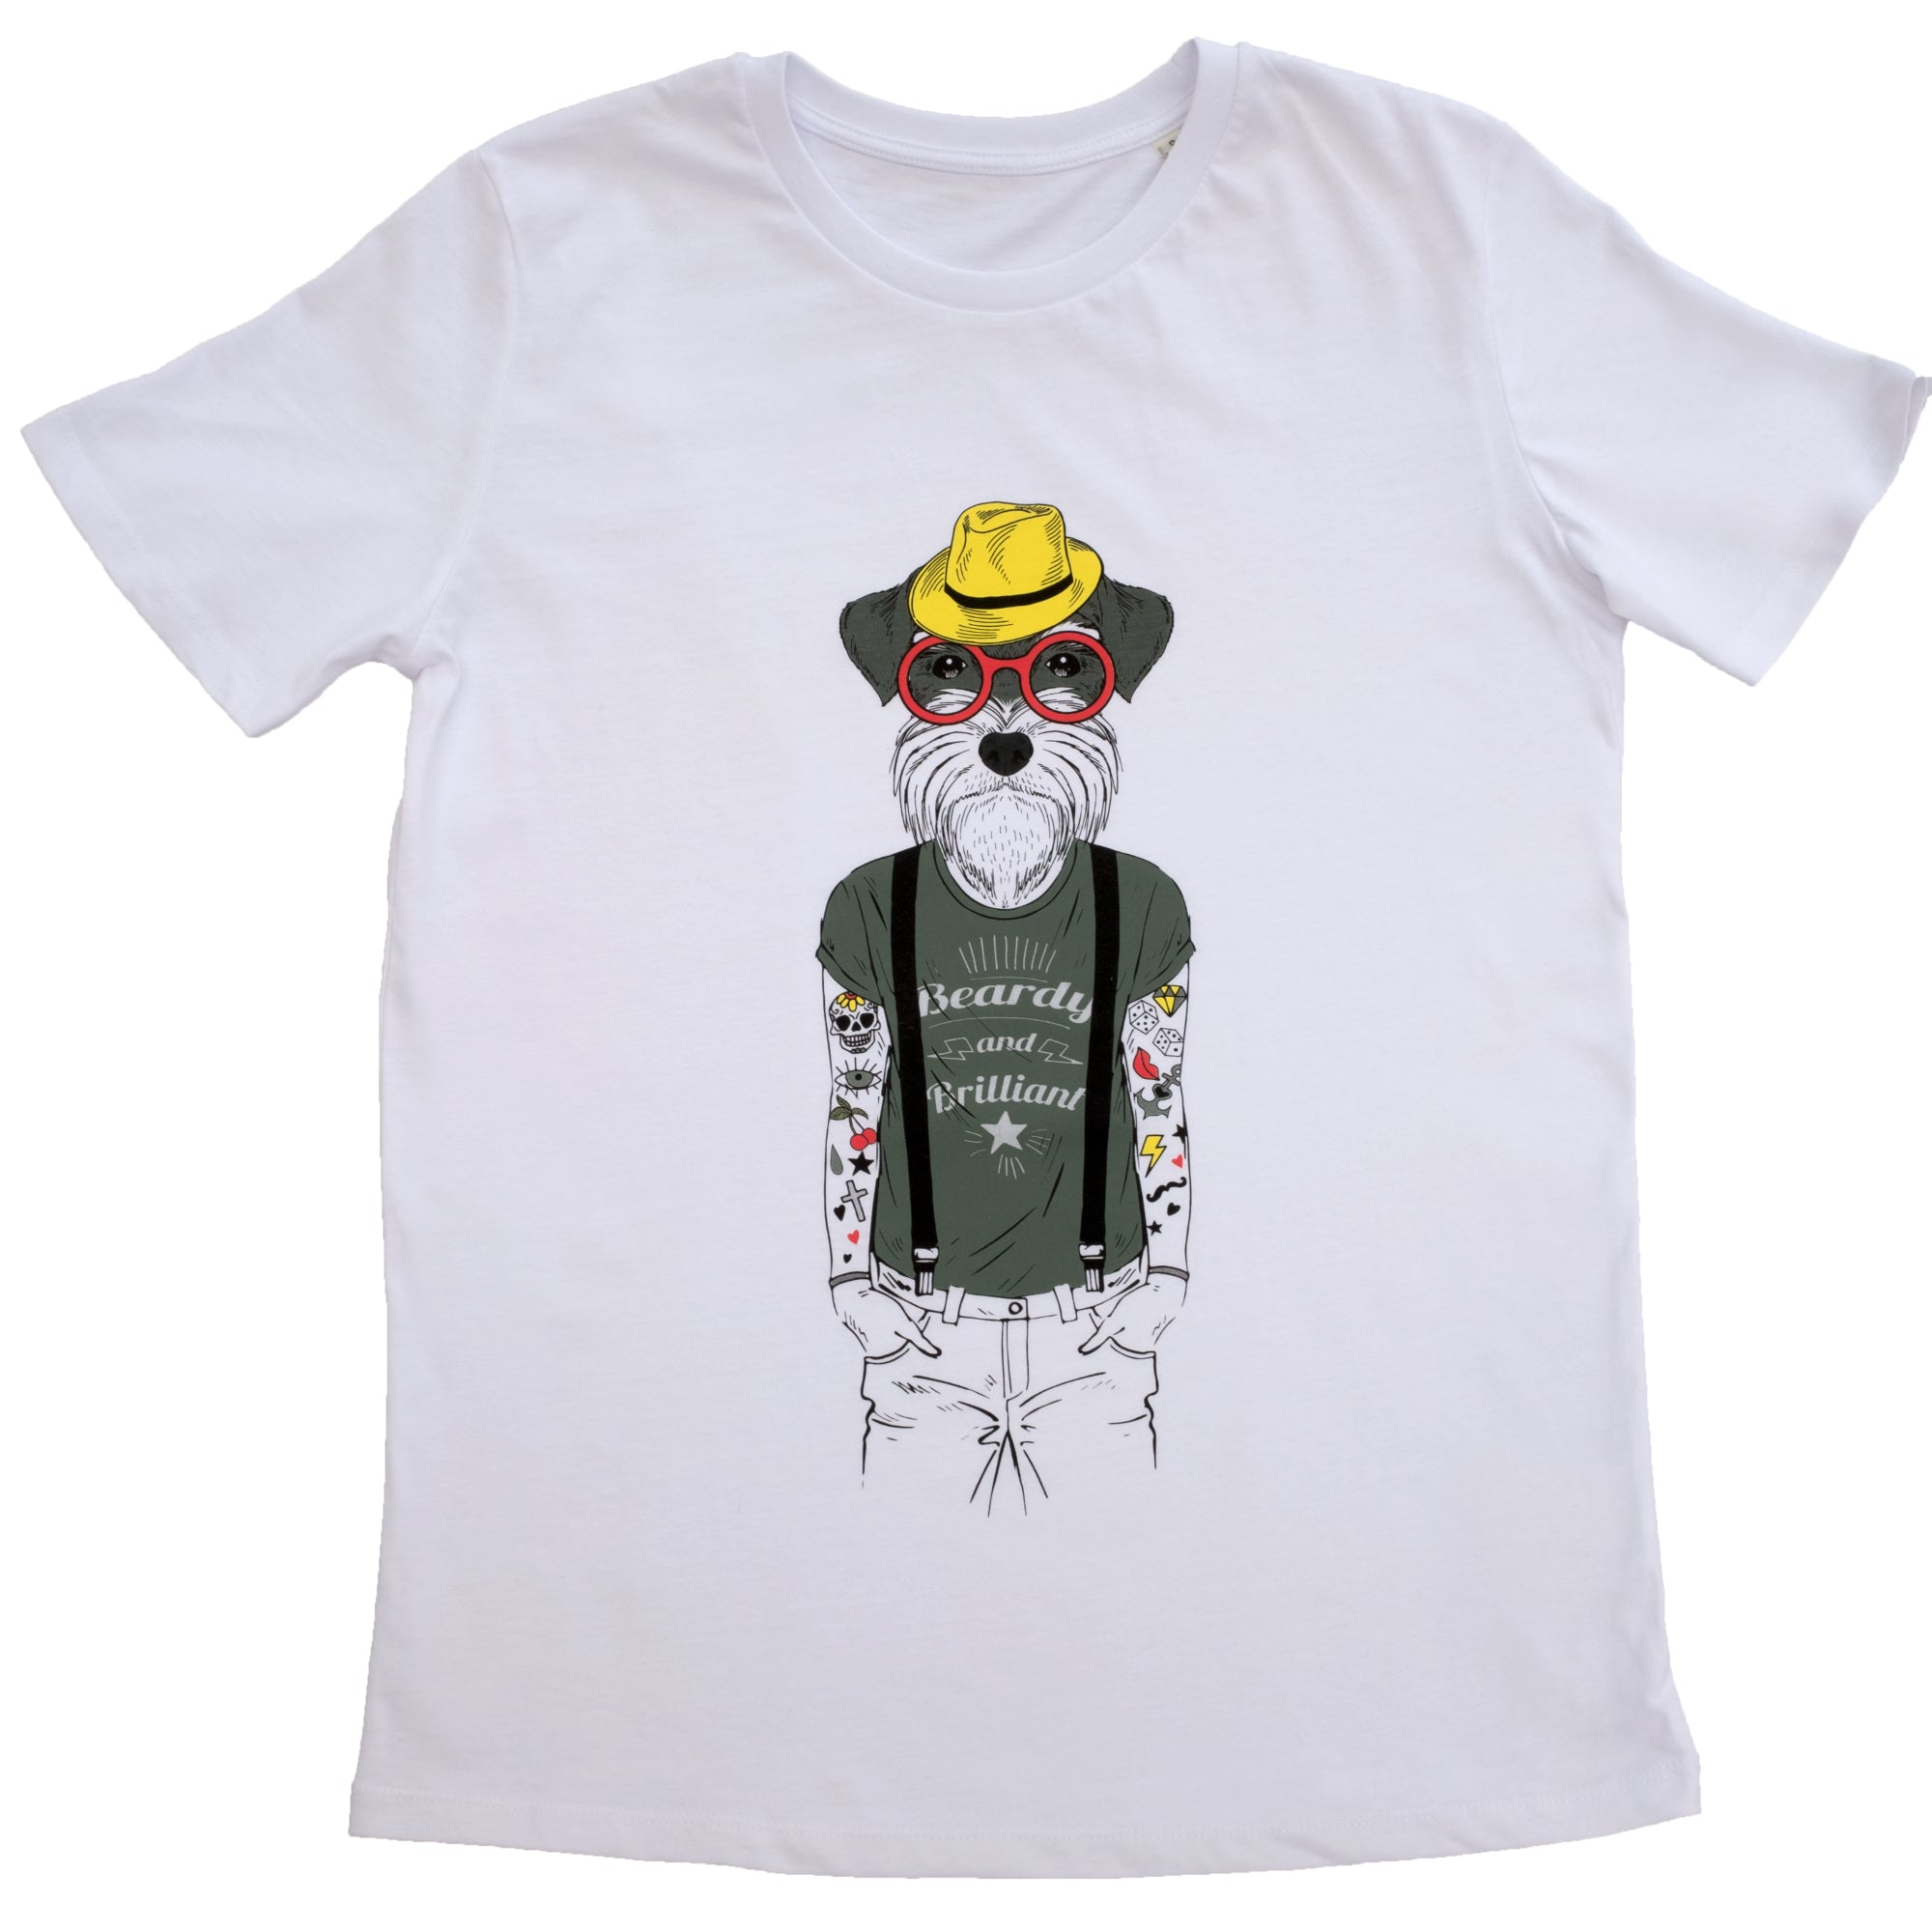 Dog human t-shirt white